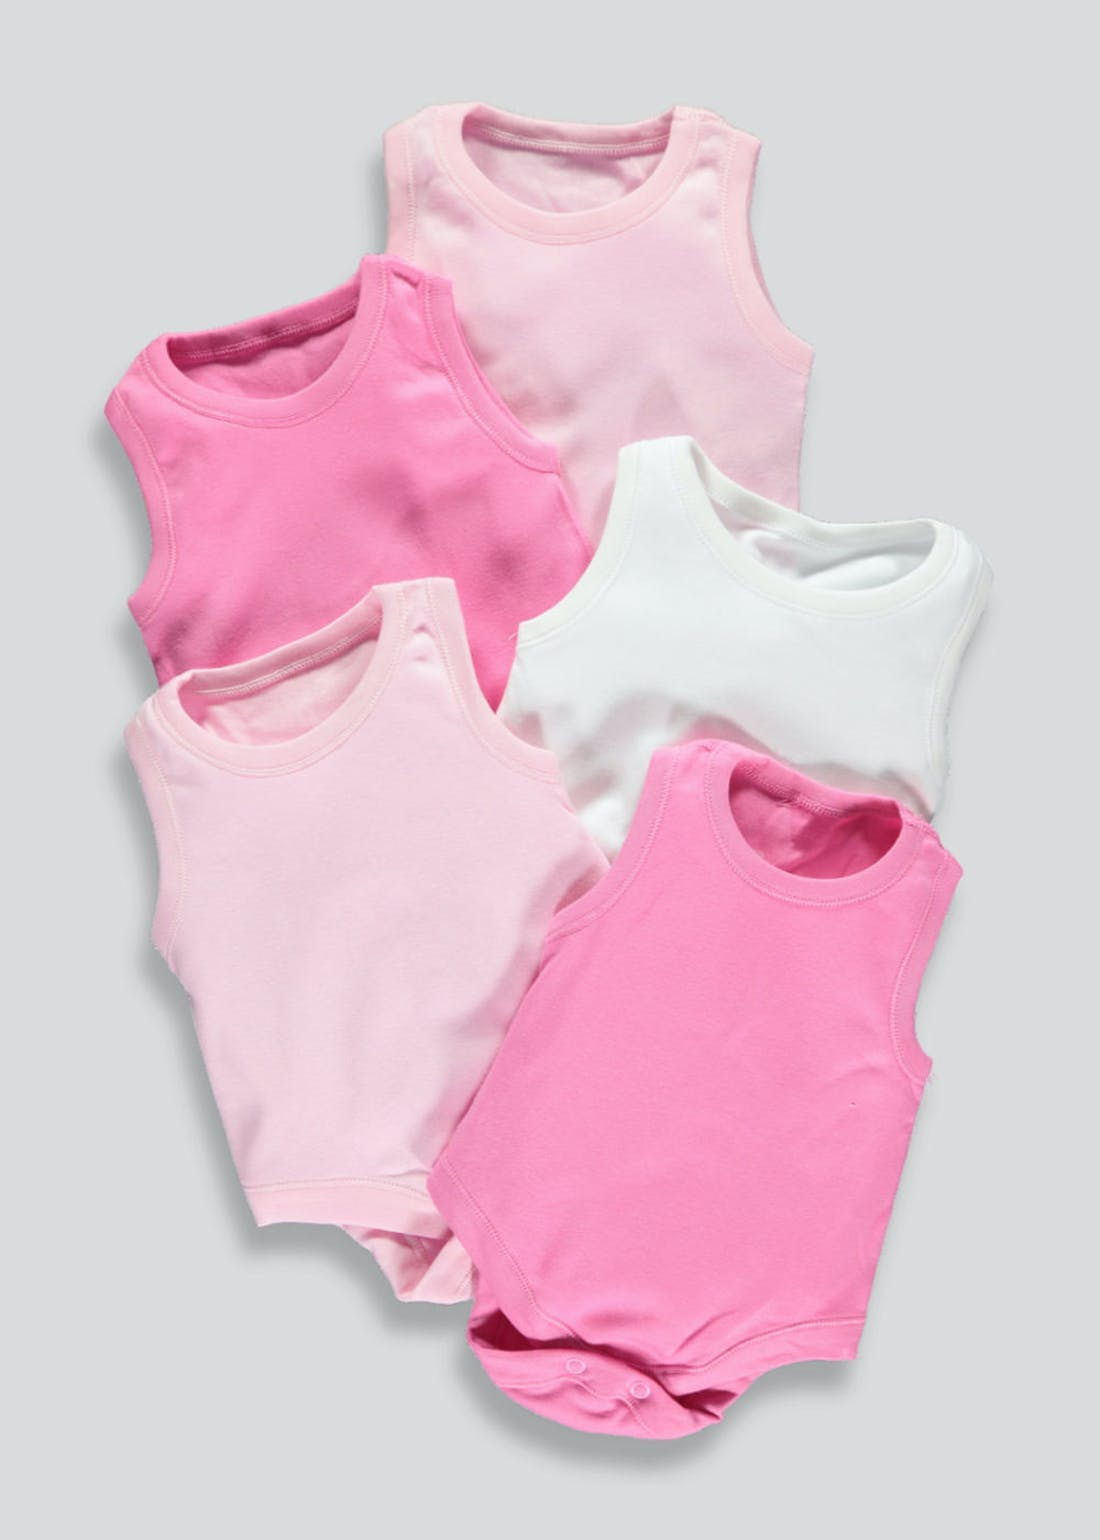 Girls 5 Pack Sleeveless Bodysuits (Newborn-23mths)